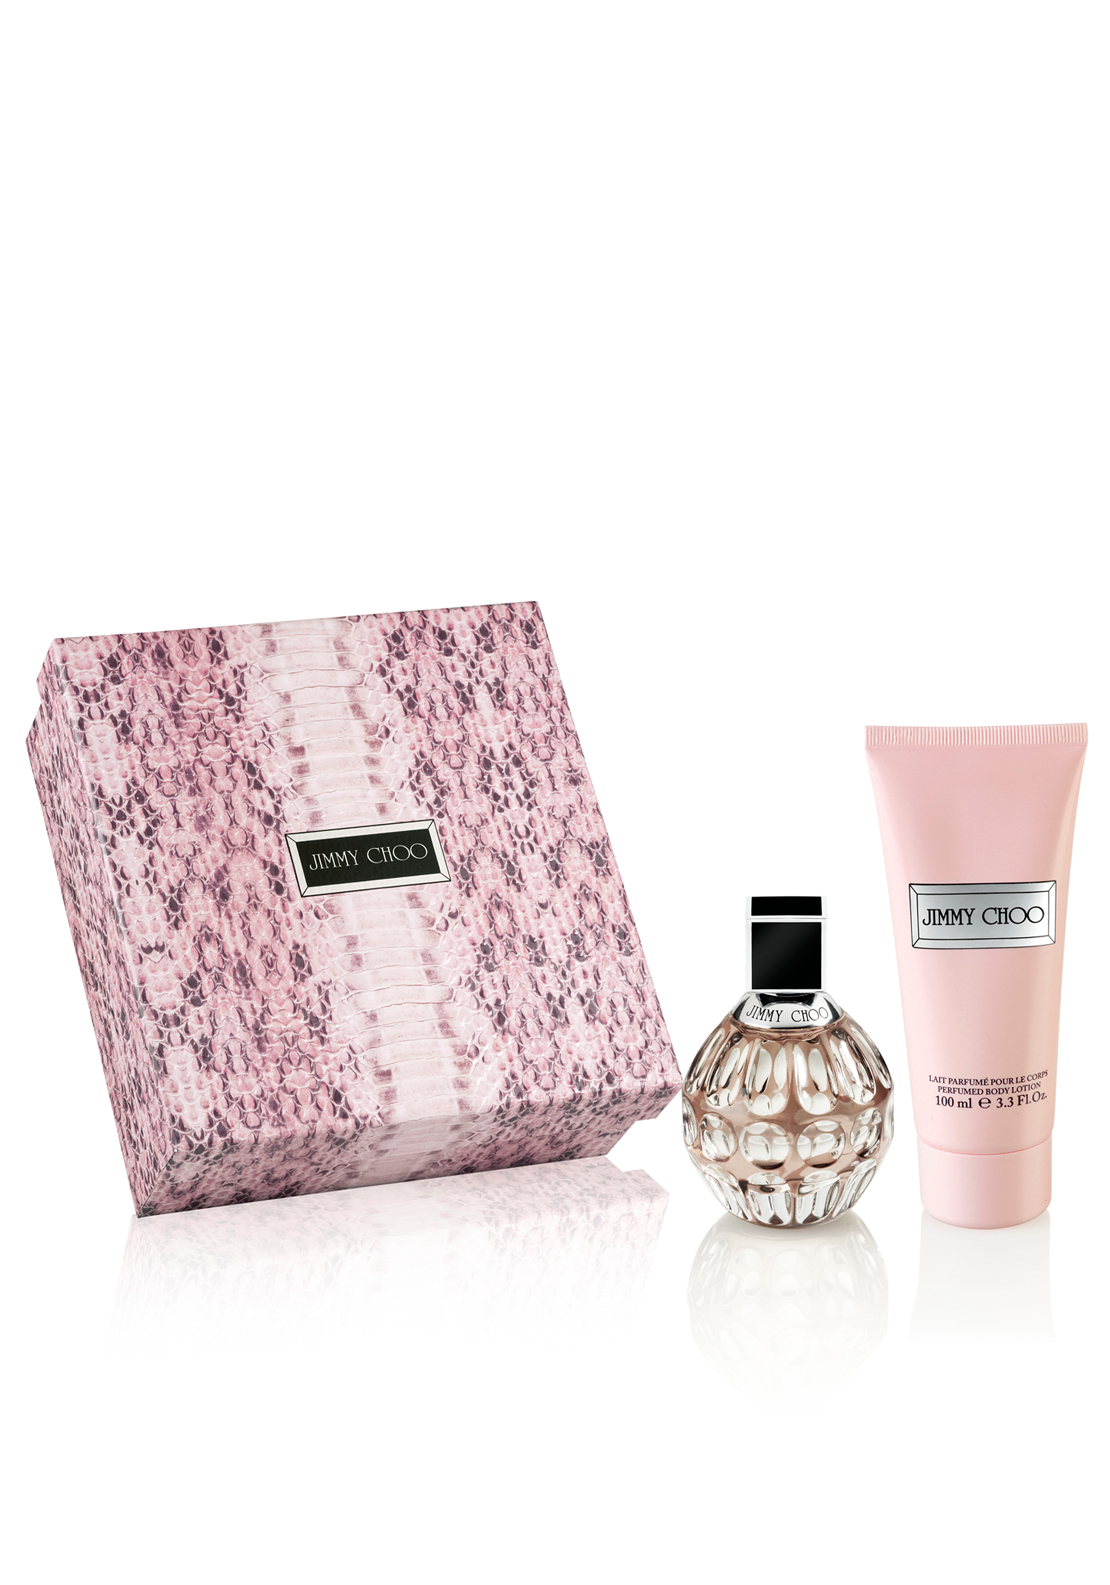 Jimmy Choo for Womans Gift Set